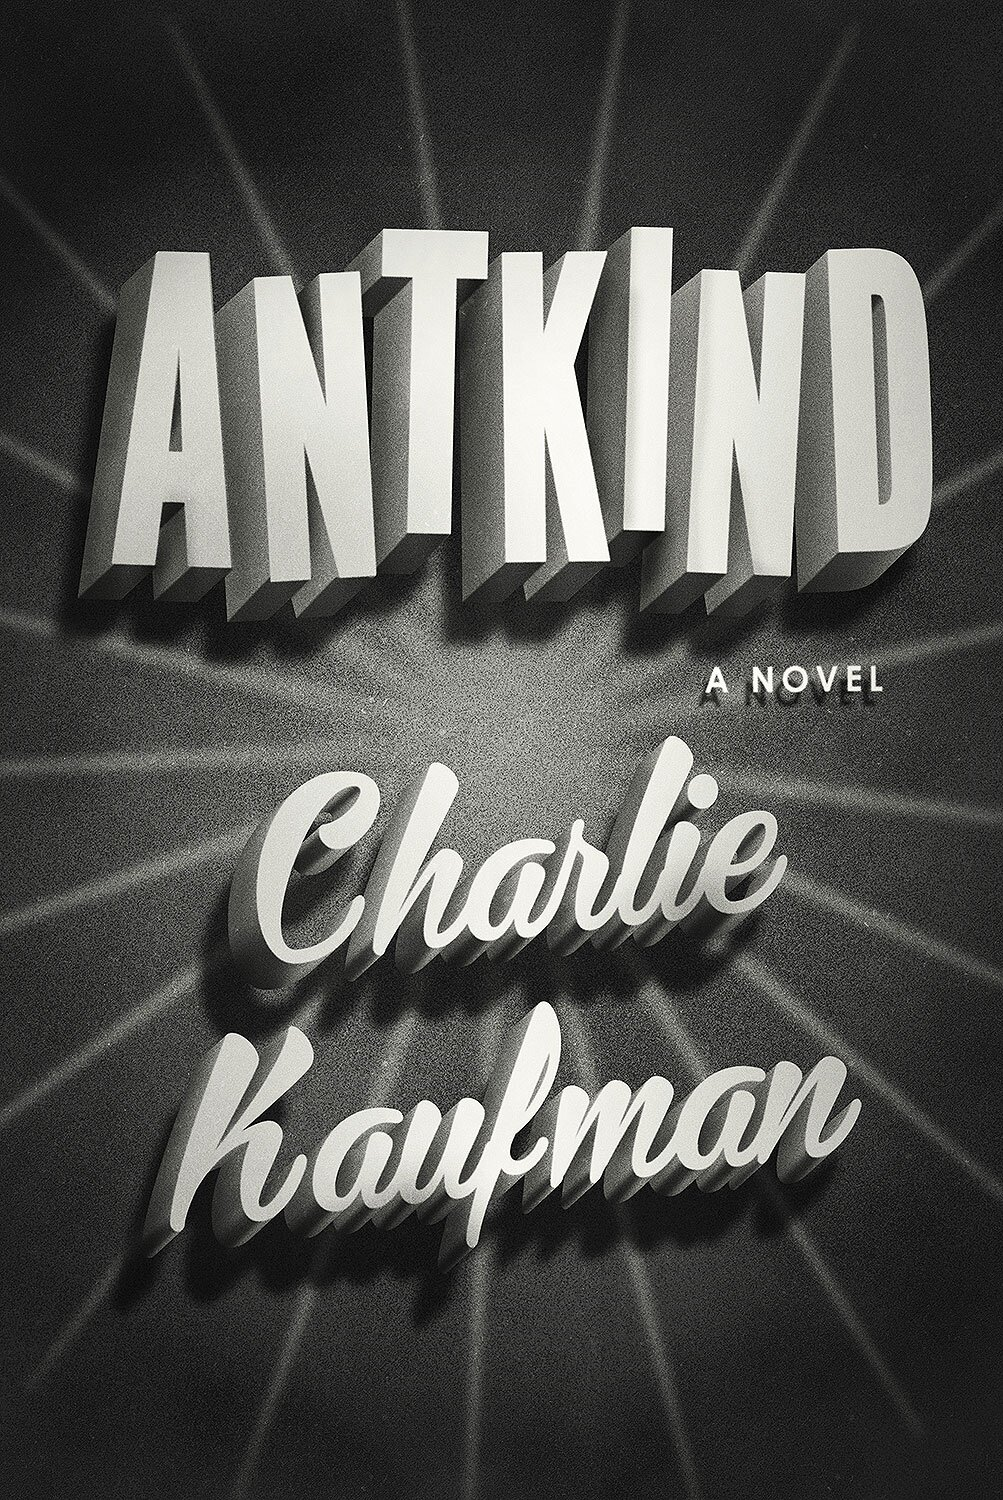 Antkind by Charlie Kaufman